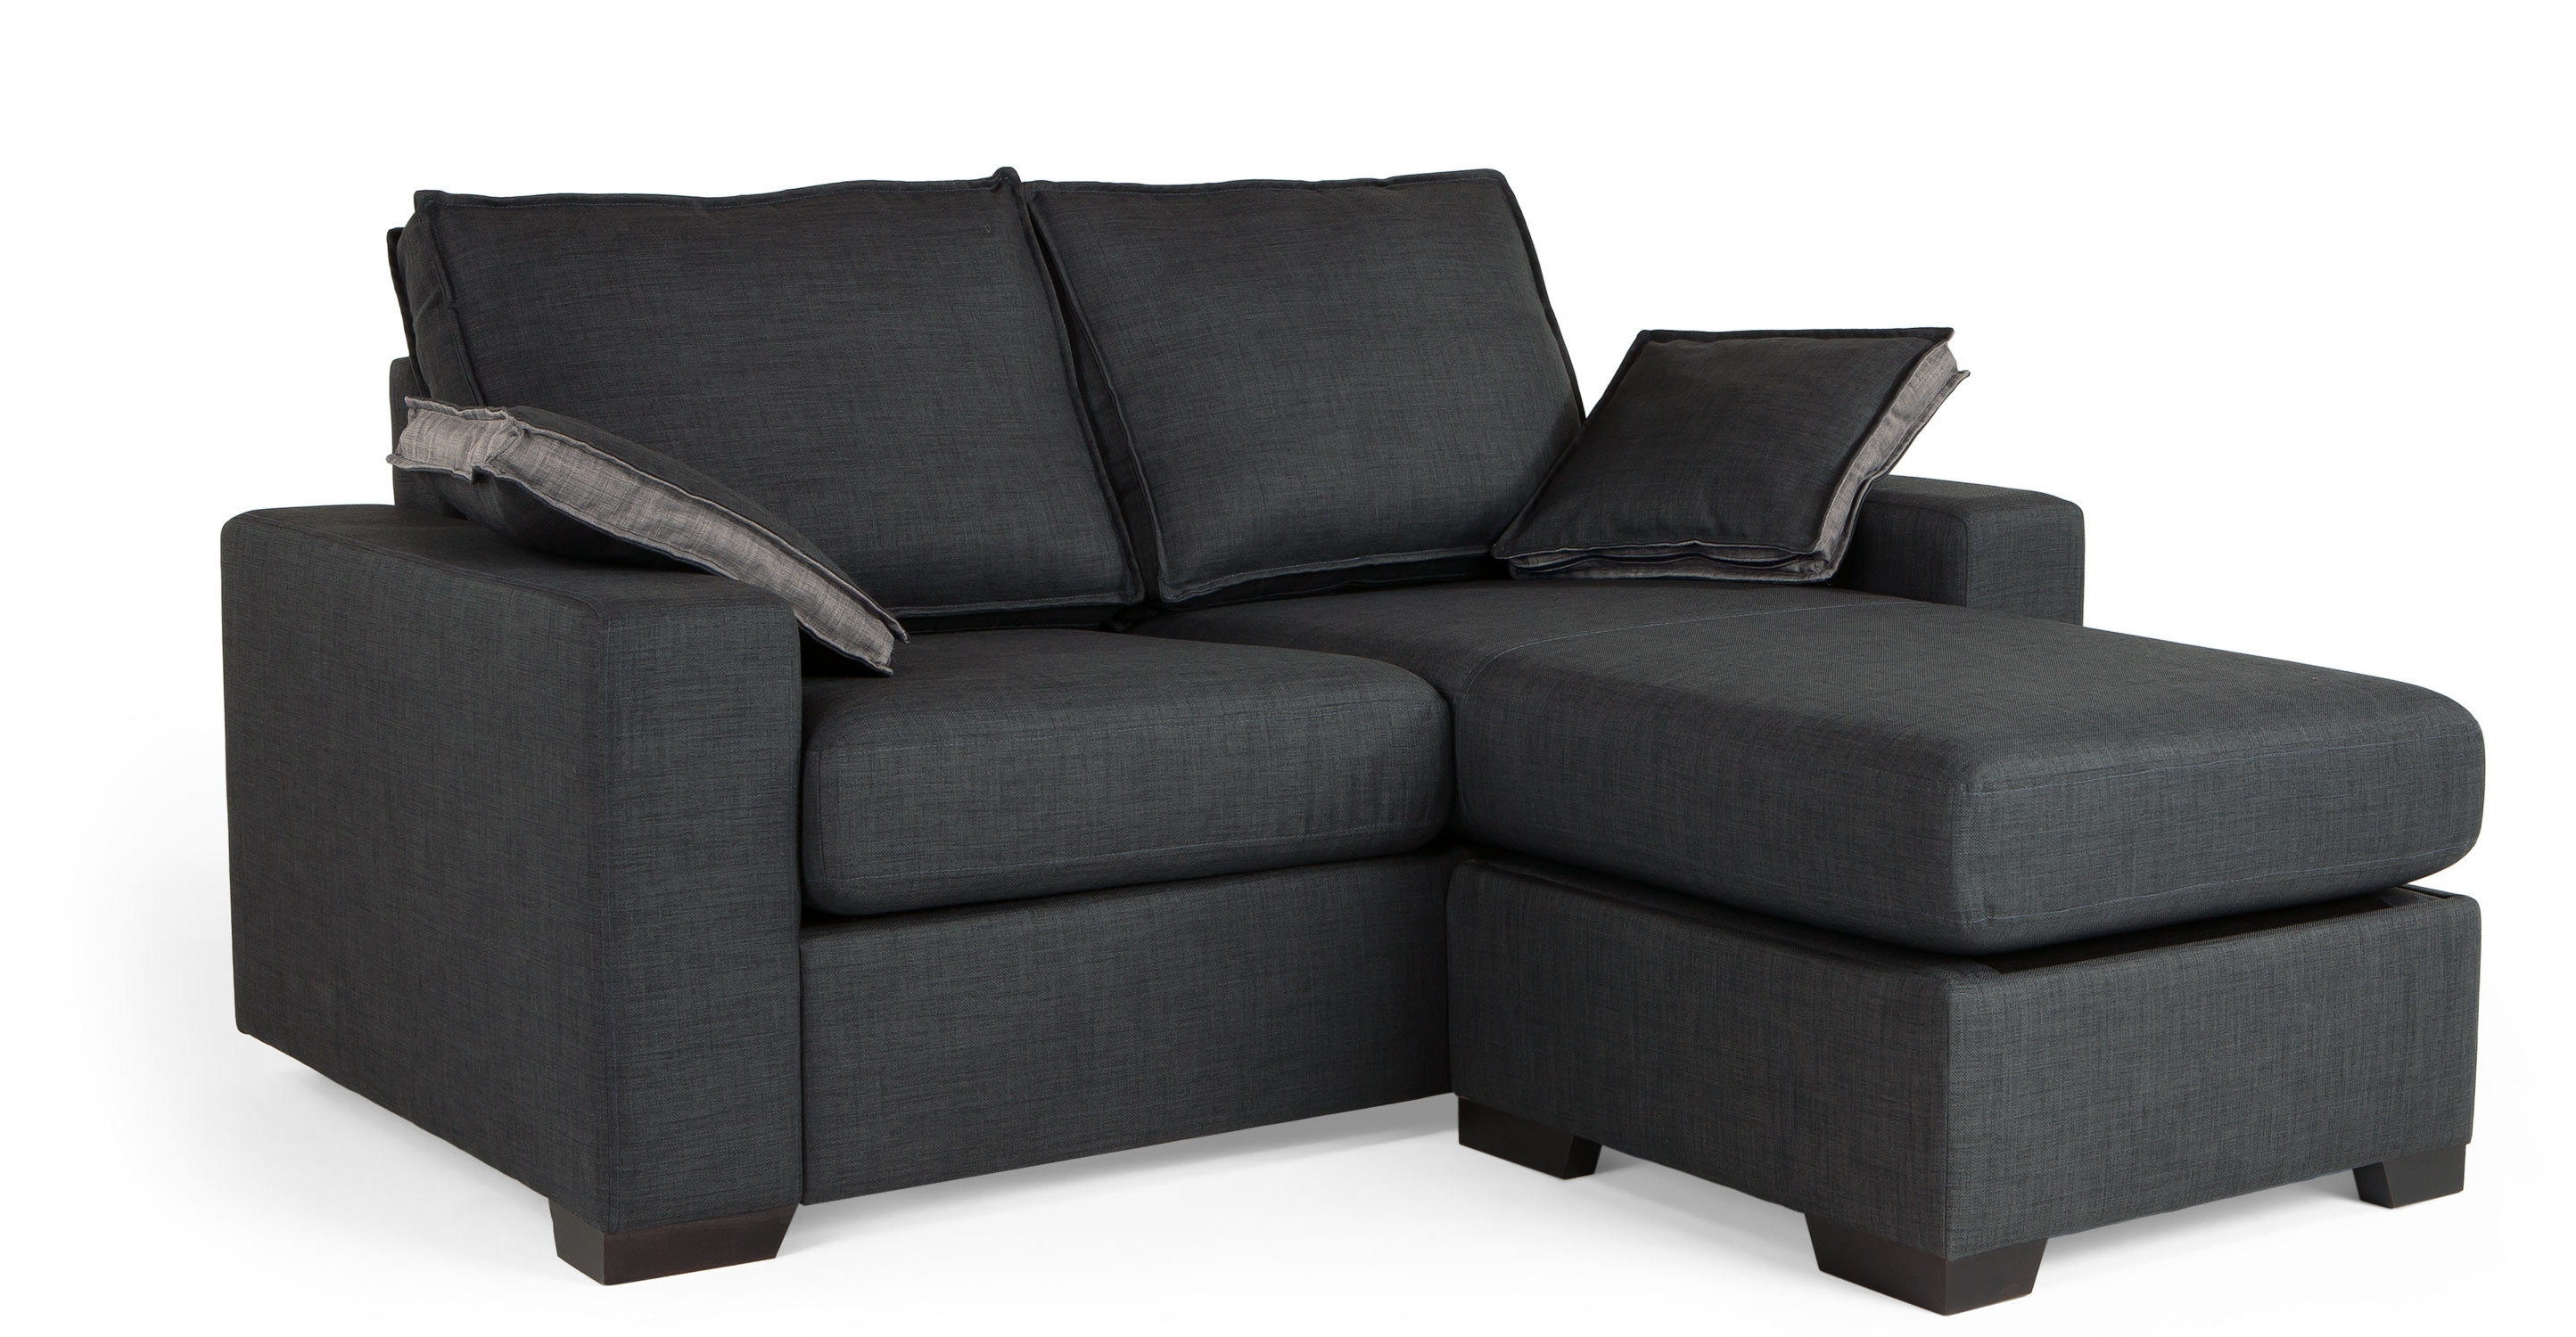 Favorite Sectional Sofa Design: Recomendation Sofa Bed Sectionals Best With Regard To Small Couches With Chaise (View 15 of 15)